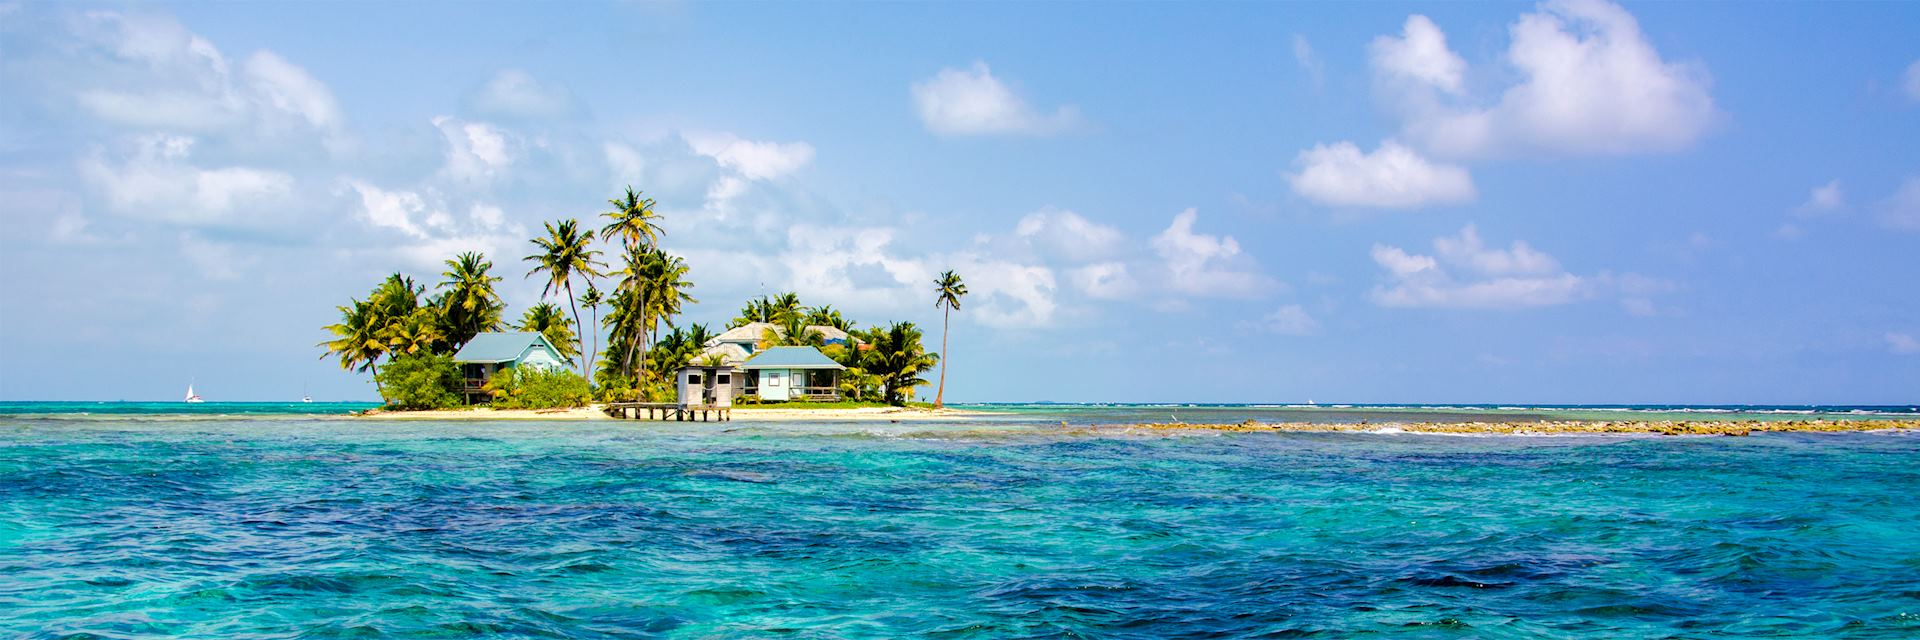 Secluded island, Belize